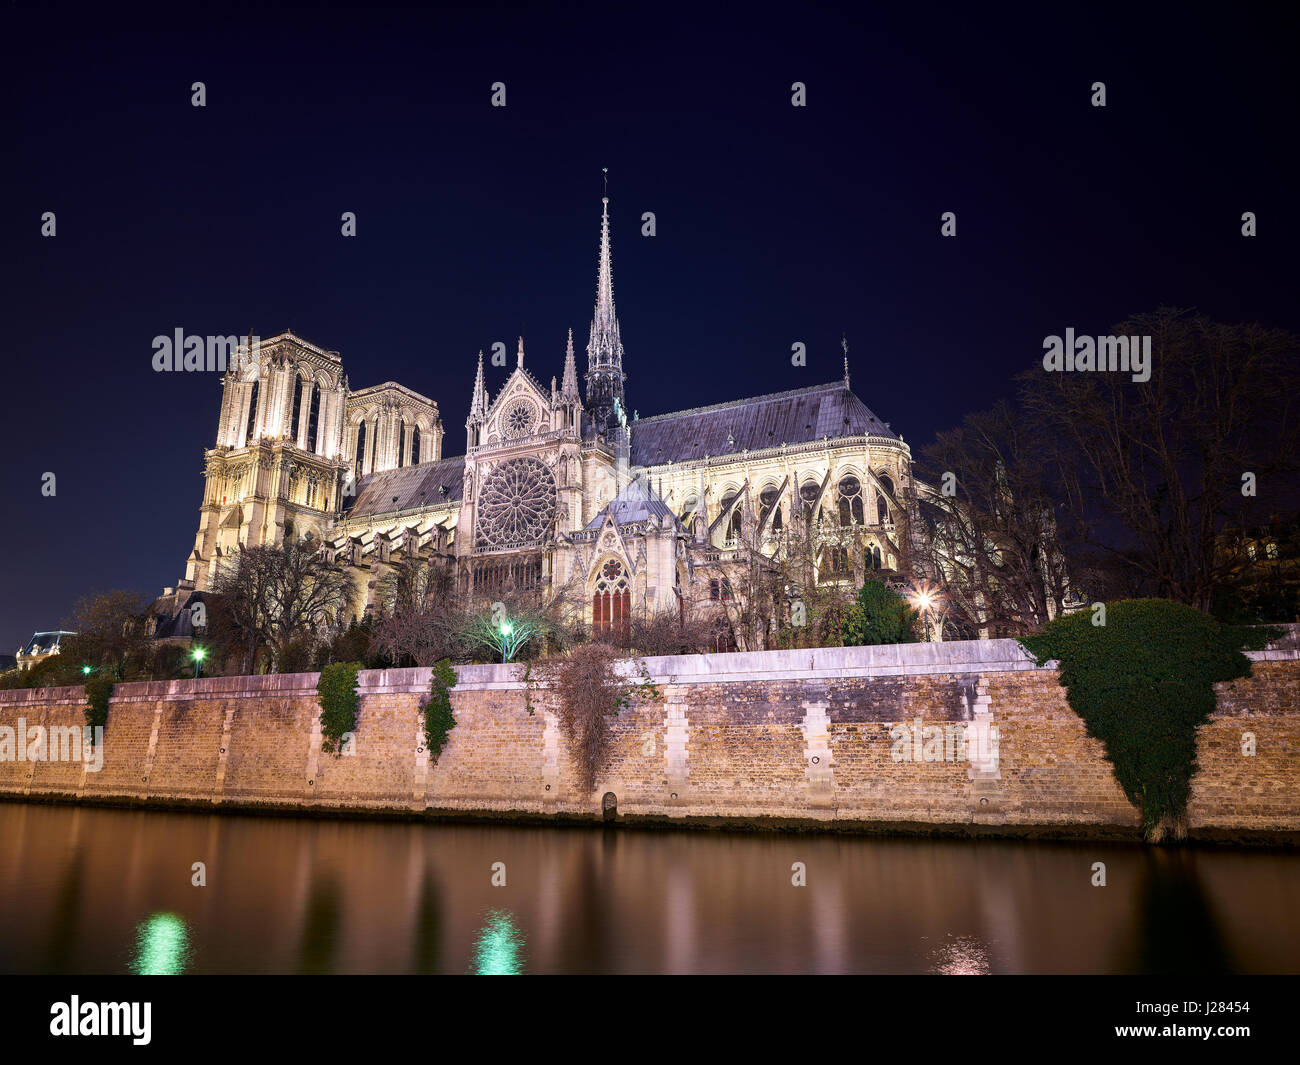 Low angle view of Notre Dame de Paris by Seine river against clear sky at night - Stock Image